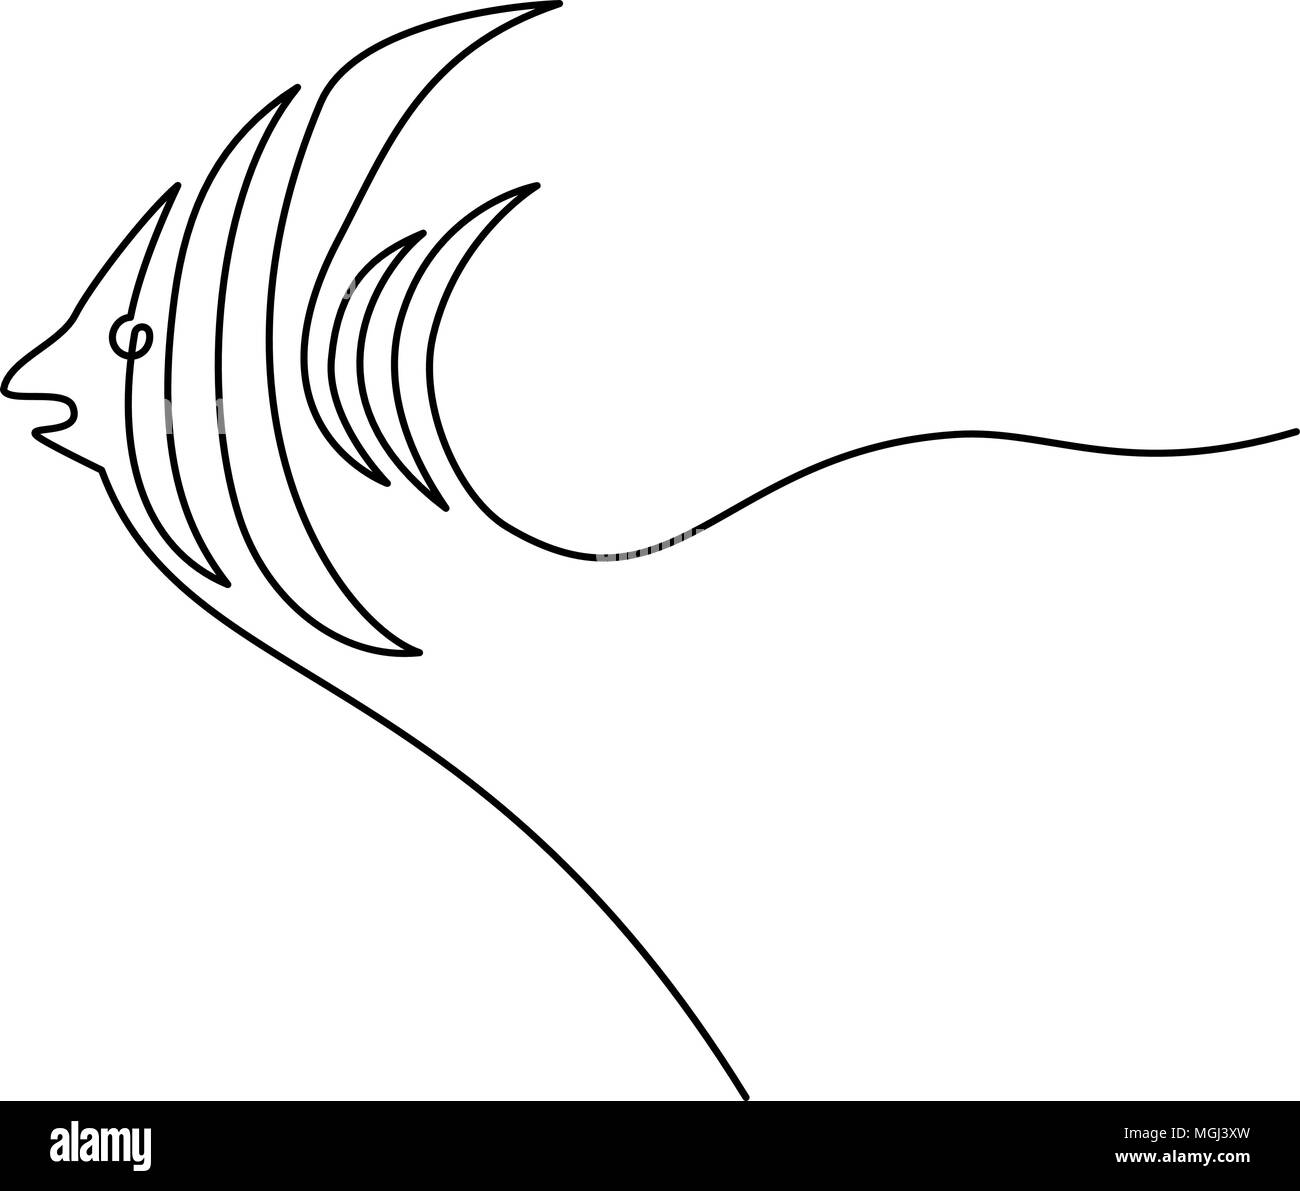 Continuous line fish - Stock Image